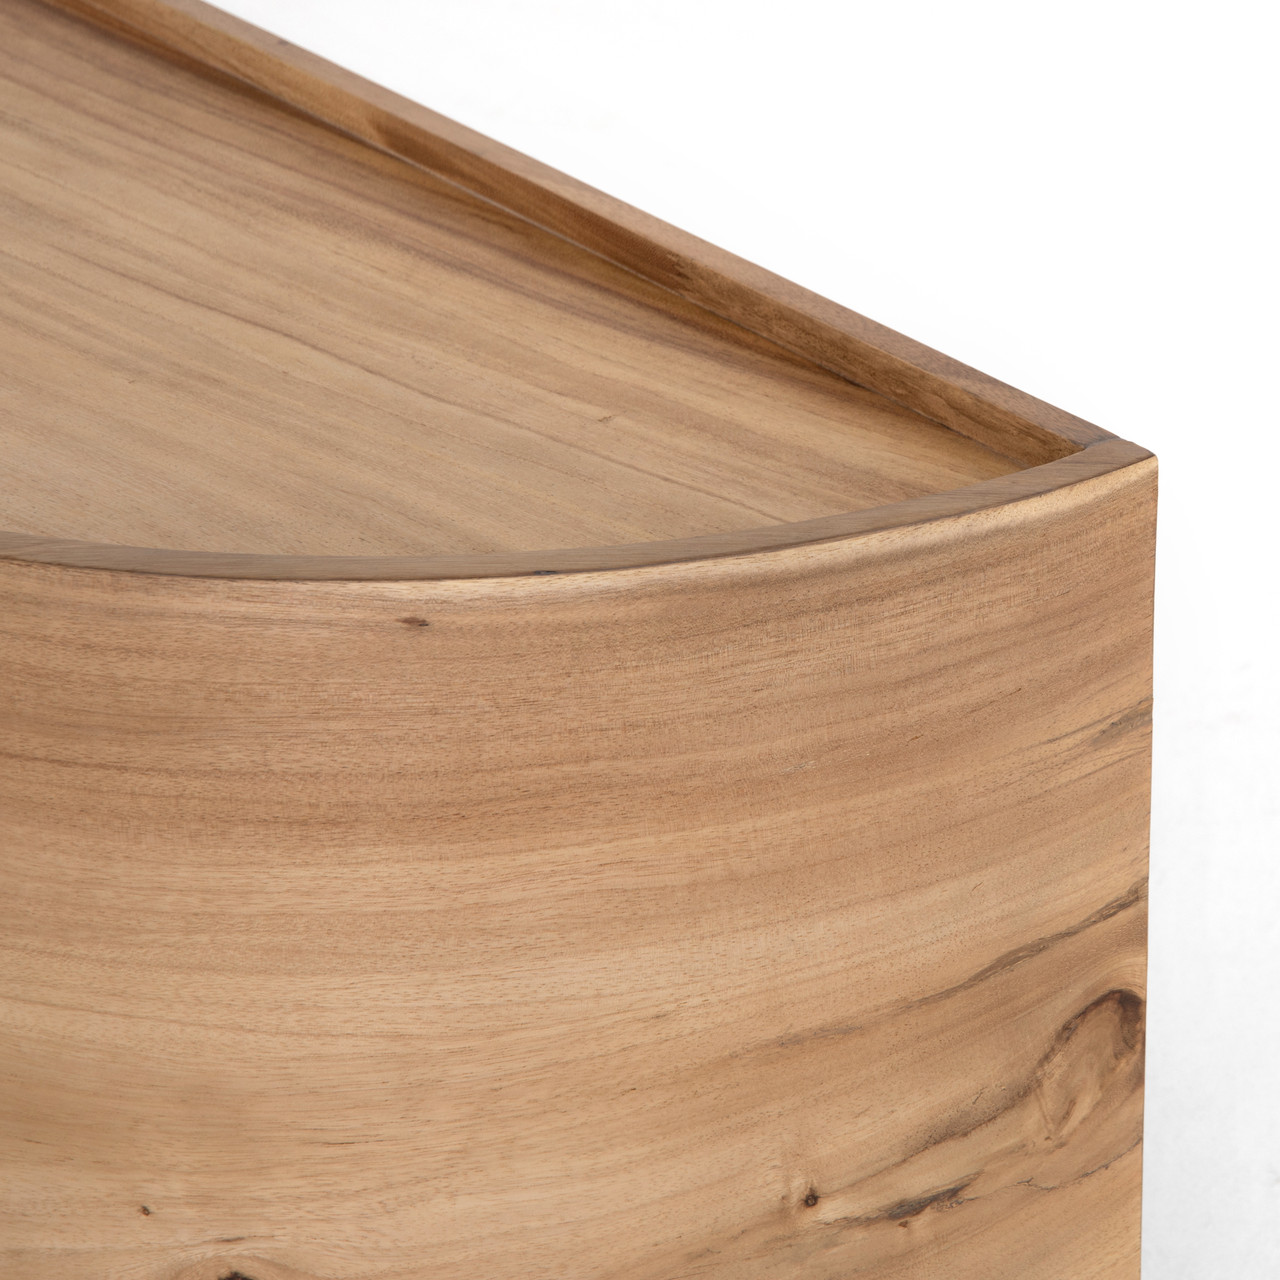 Natural Blond Guanacaste Low Media Console